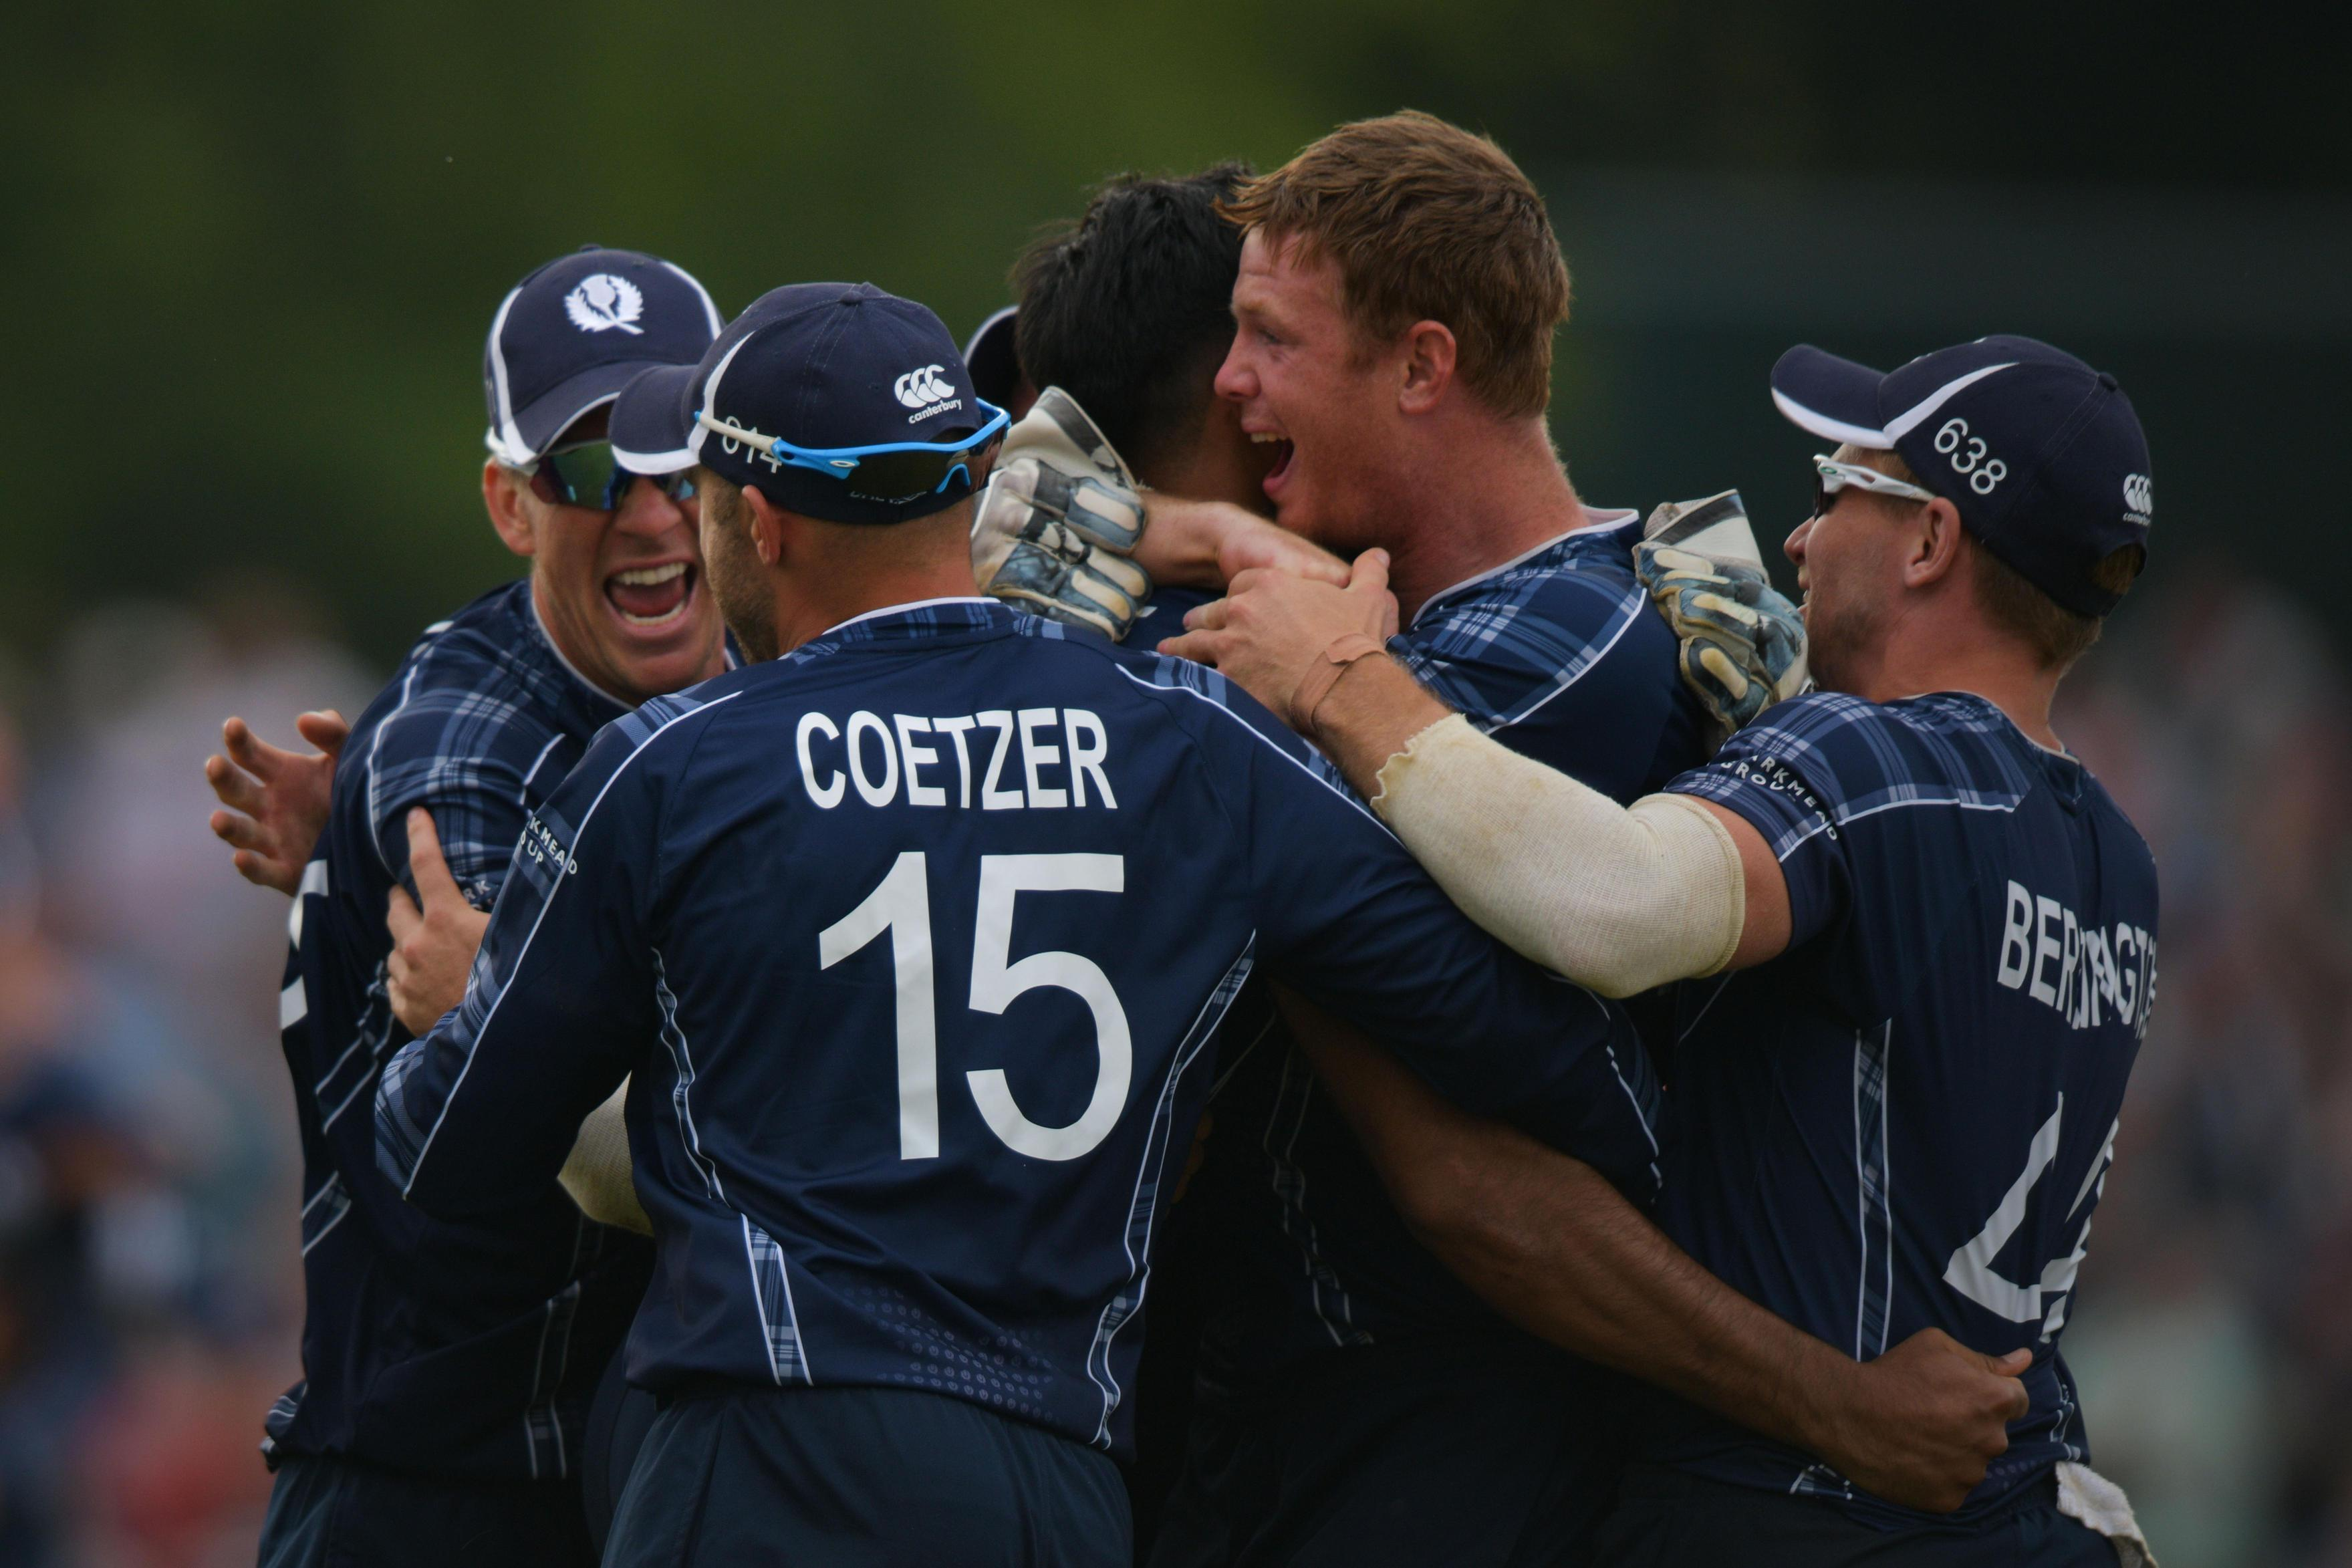 Scotland stunned England in their one-day international on Sunday